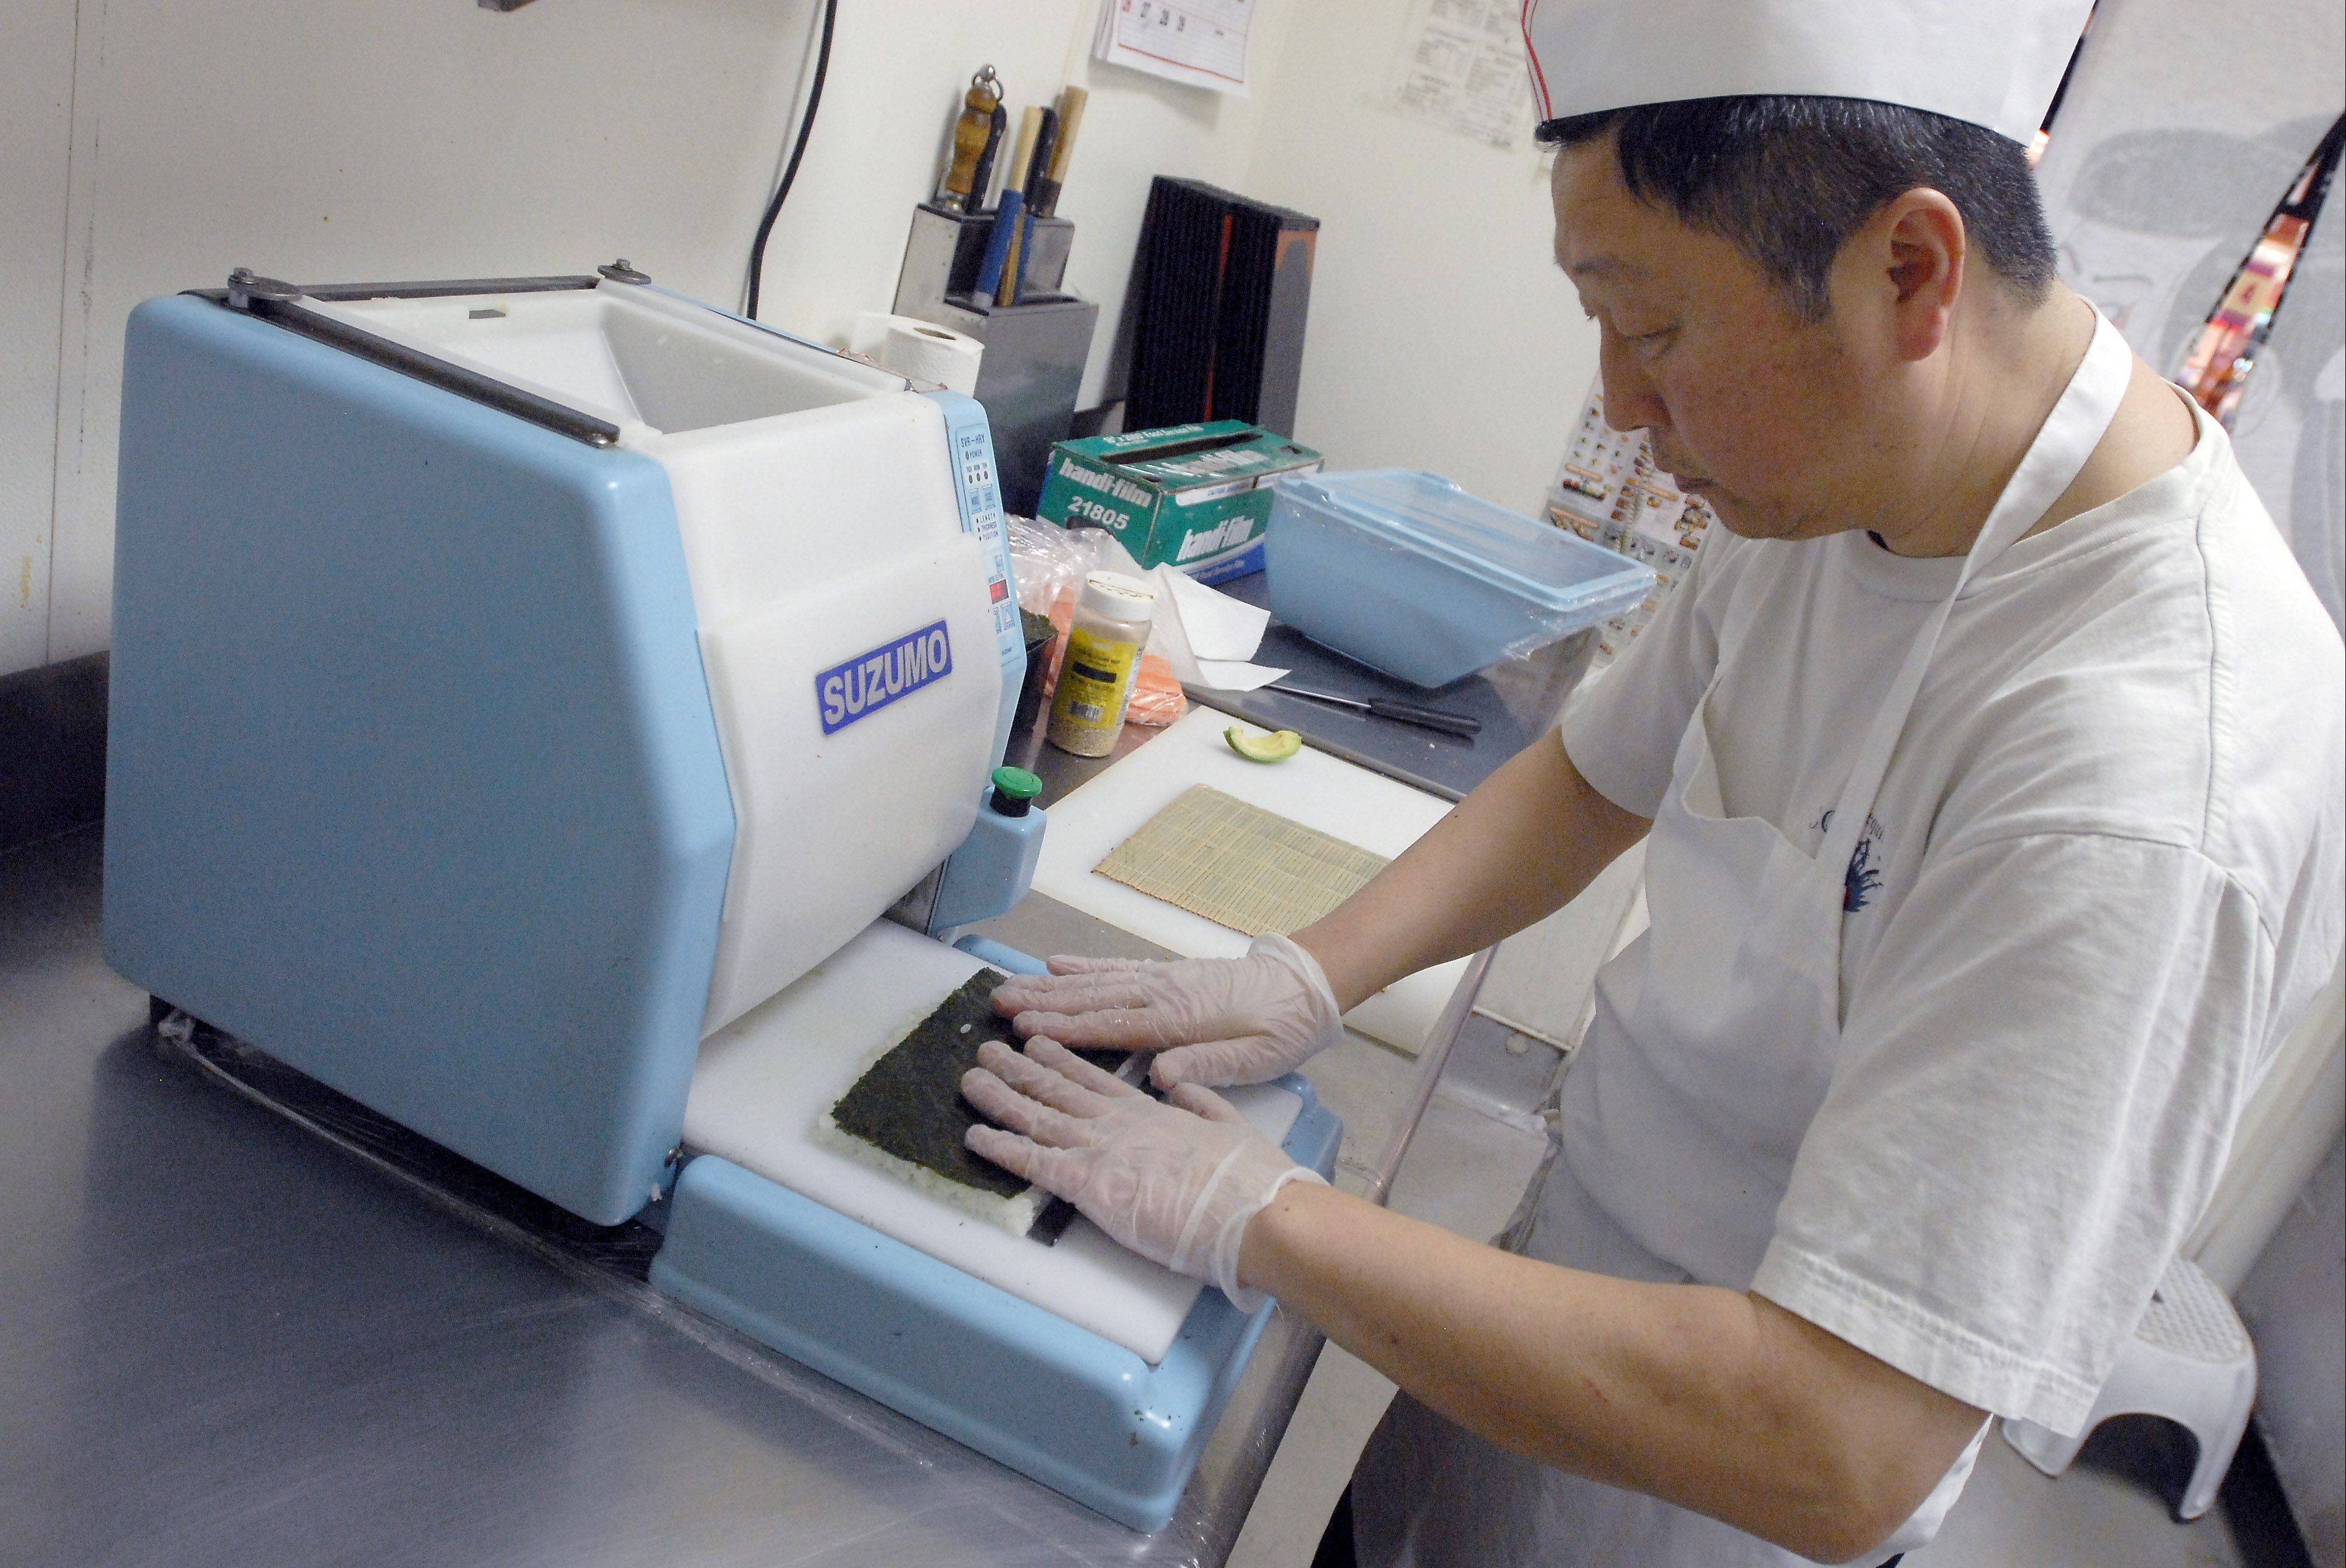 Sushi department supervisor Satoshi Tsutsumi applies seaweed to a sheet of rice made by machine to speed production of sushi.